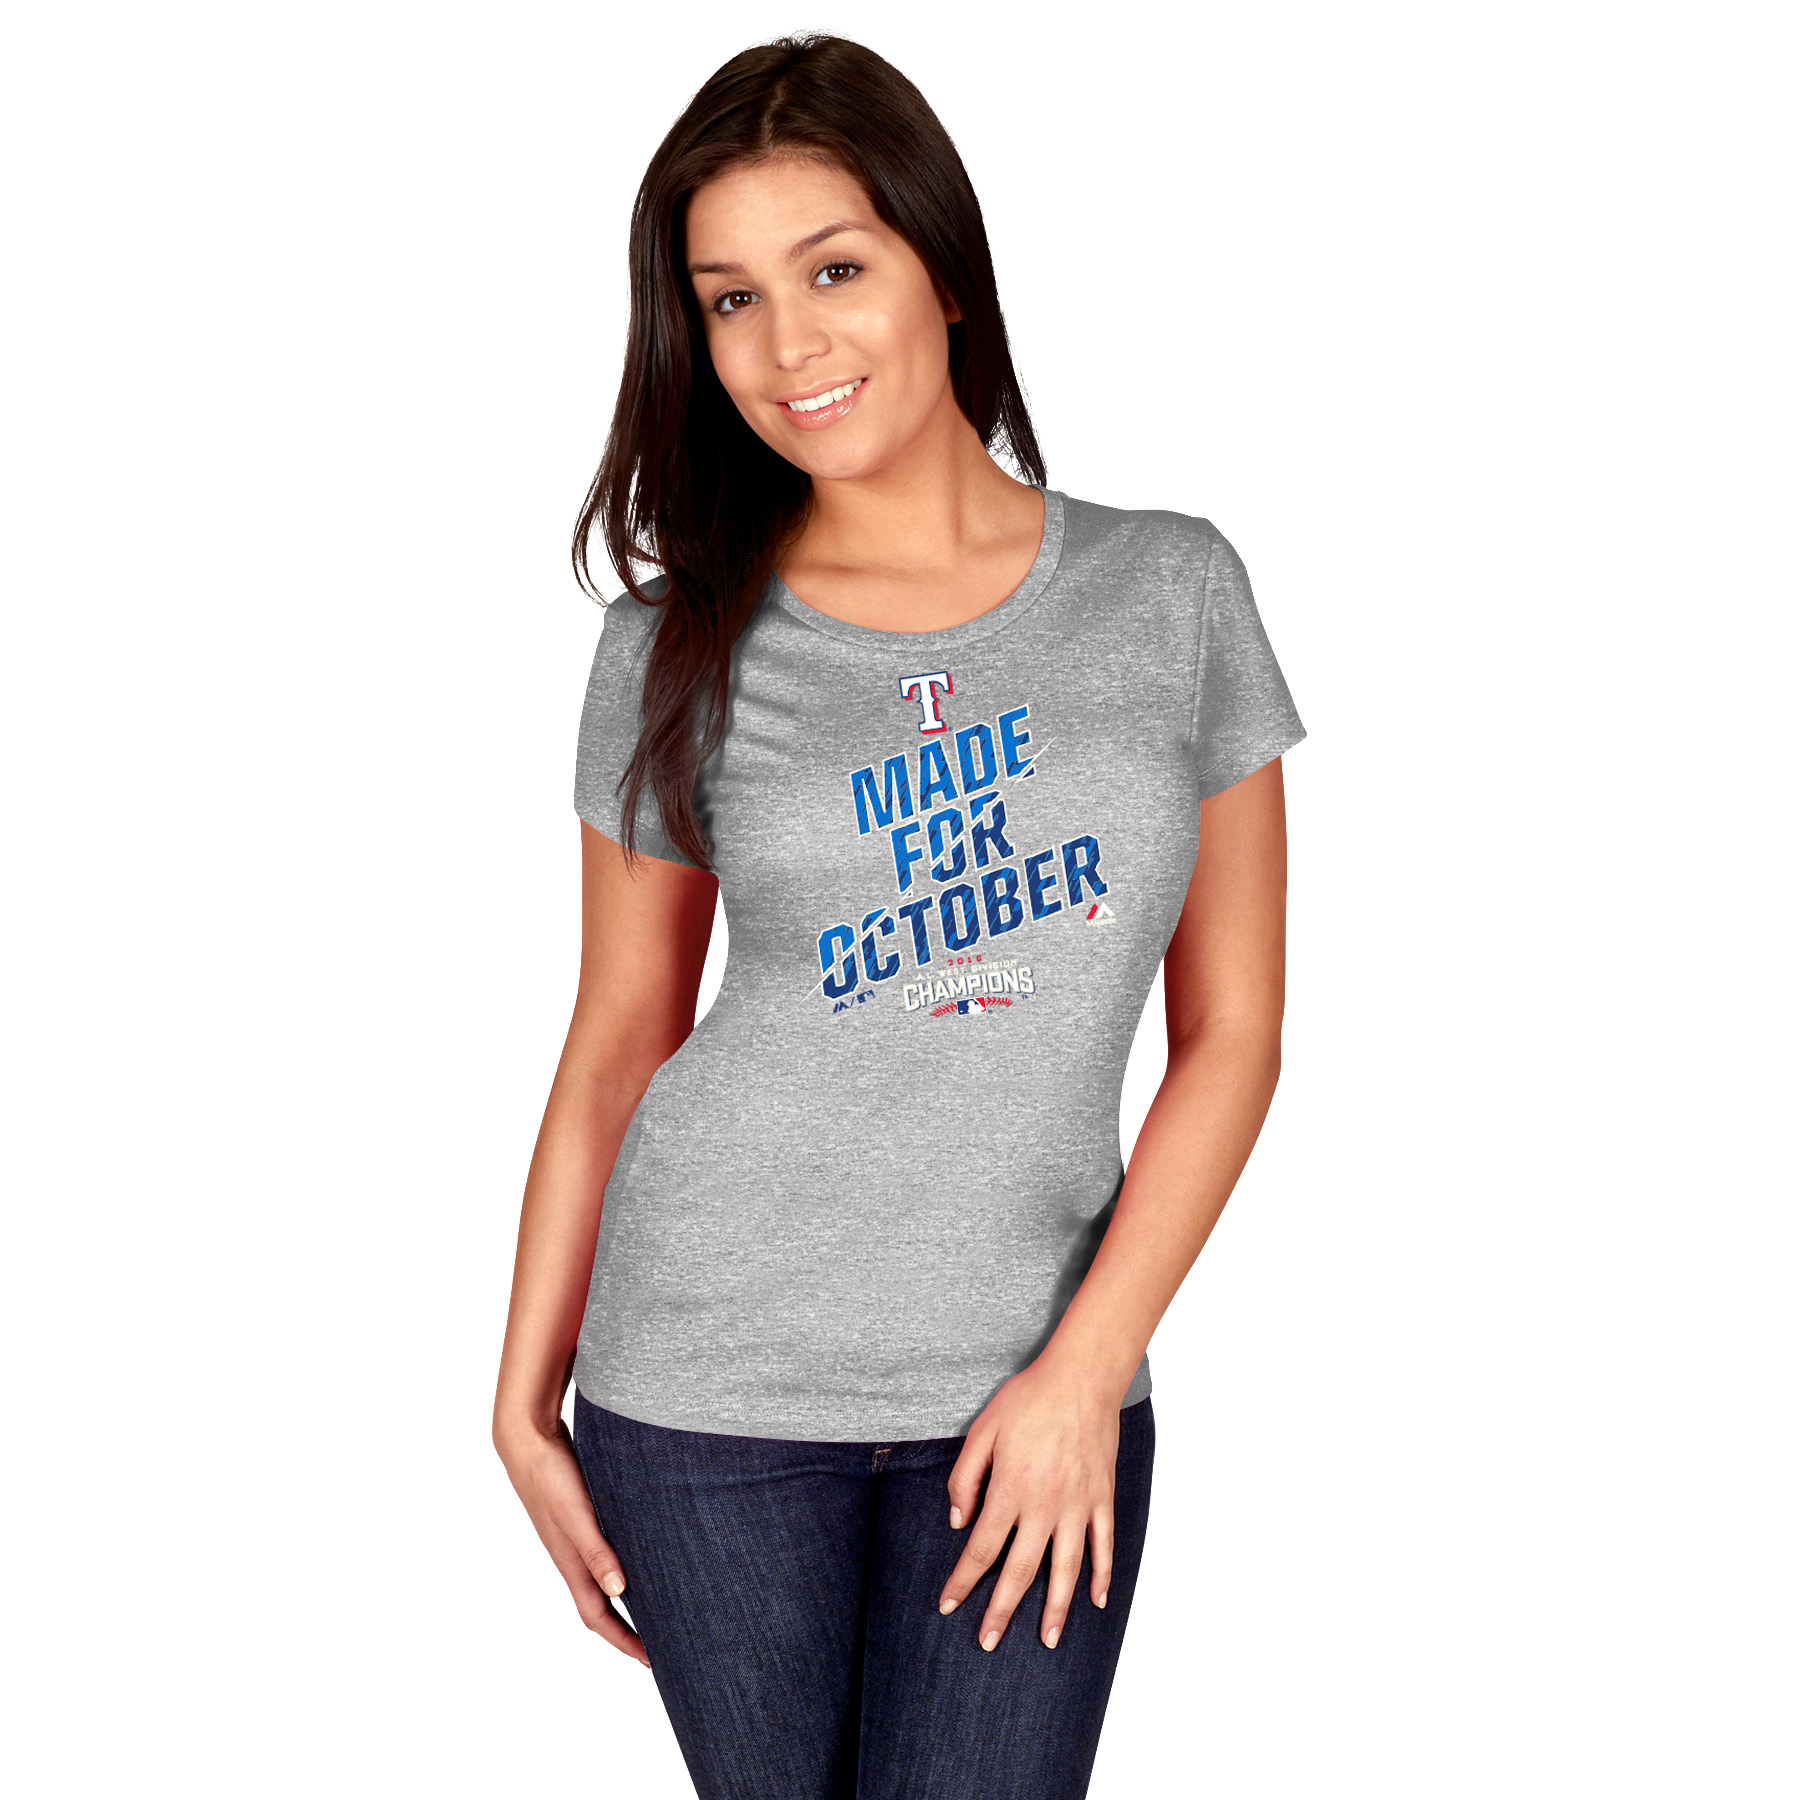 Texas Rangers Majestic Women's 2016 AL West Division Champions Made for October Locker Room T-Shirt - Heathered Gray